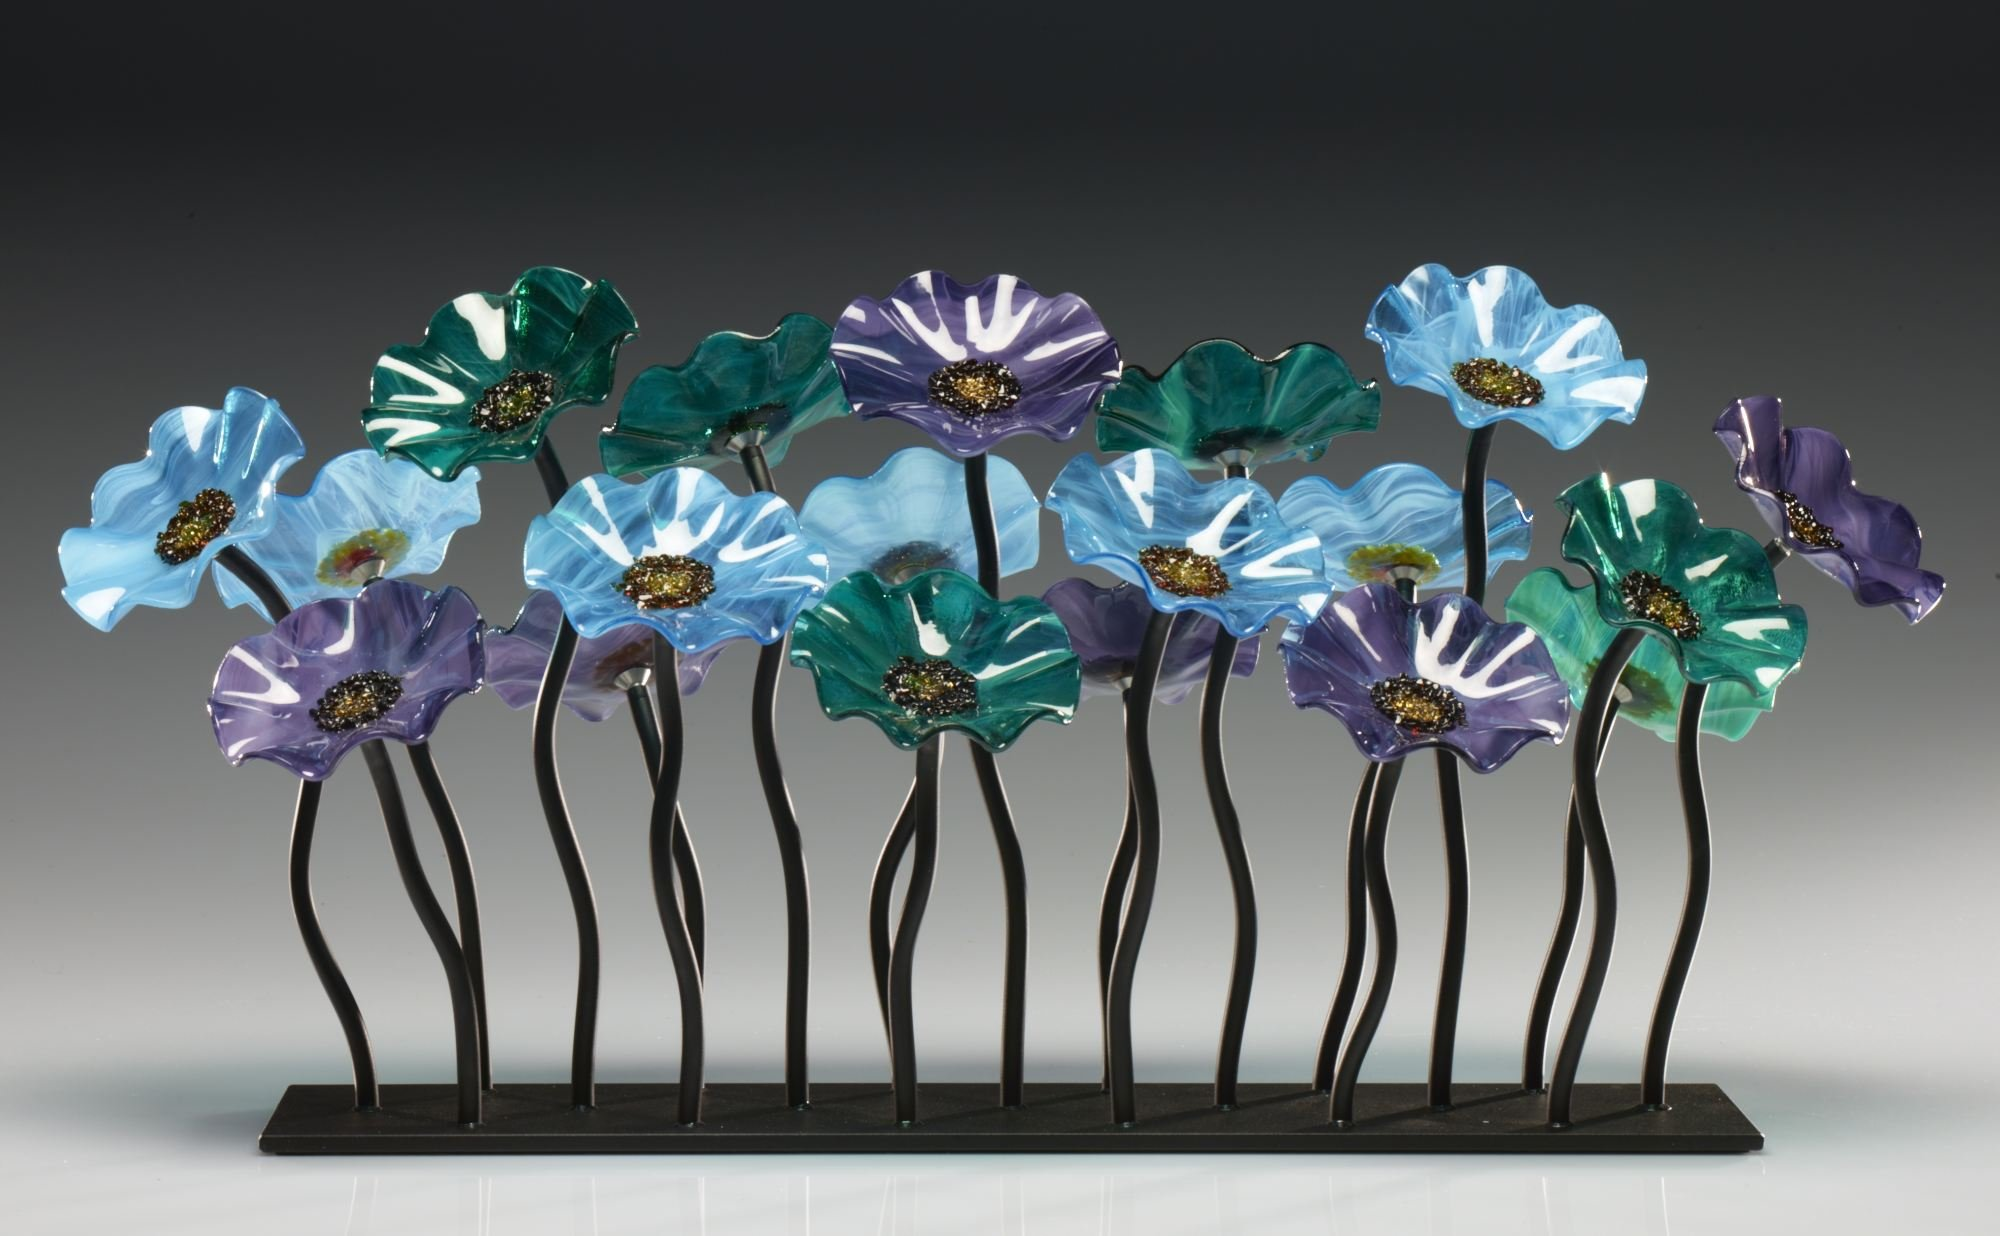 Topaz Glass Flower Garden By Scott Johnson And Shawn